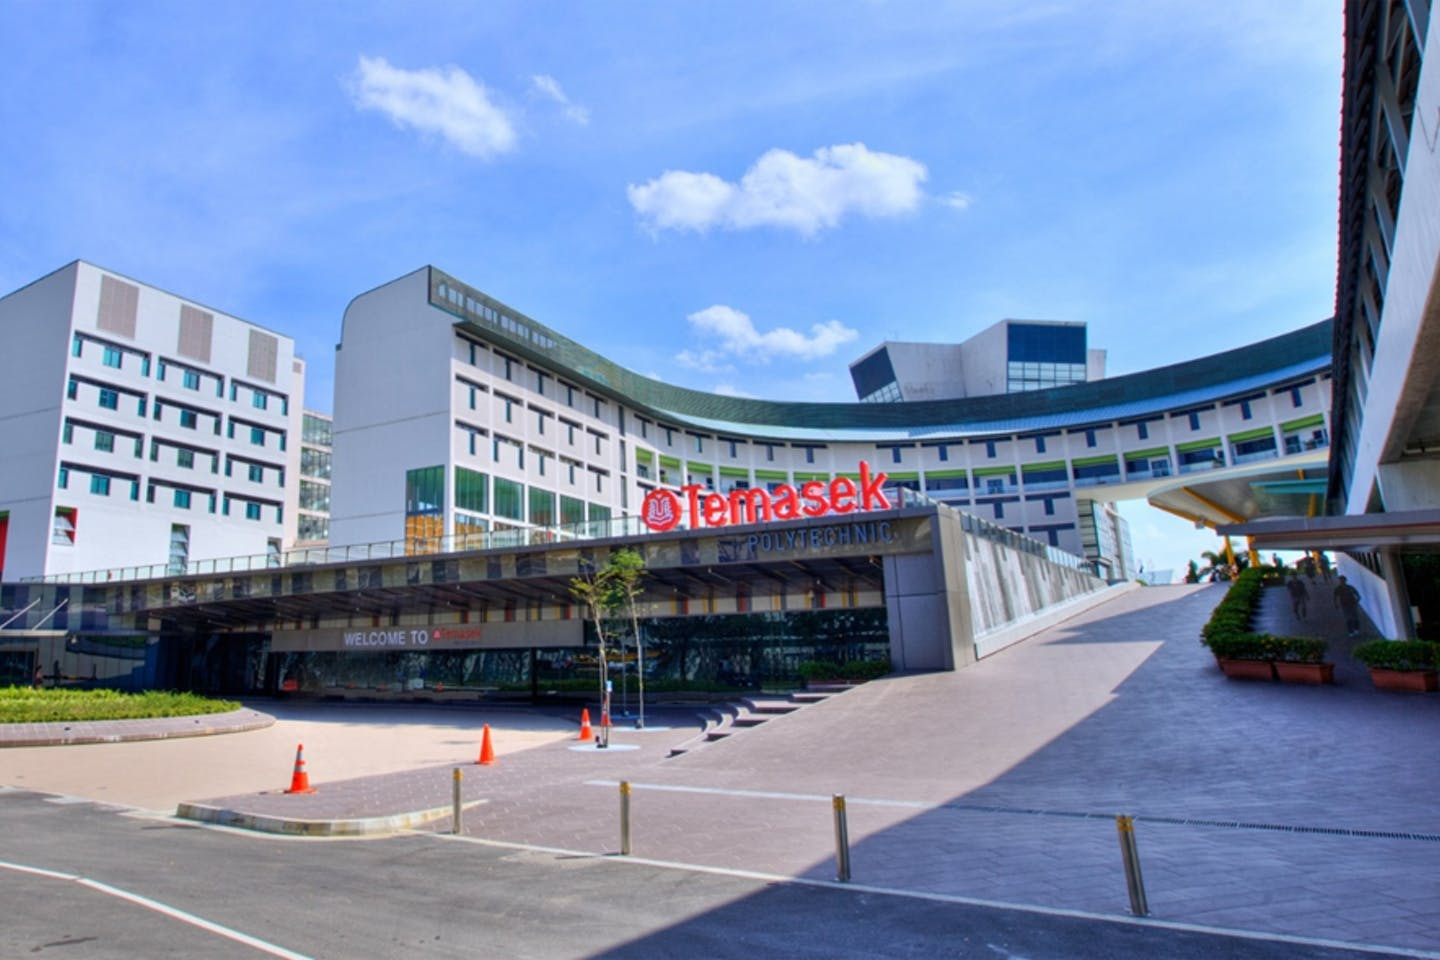 Surbana Jurong to deploy one of the largest Integrated Facilities Management platforms at Temasek Polytechnic